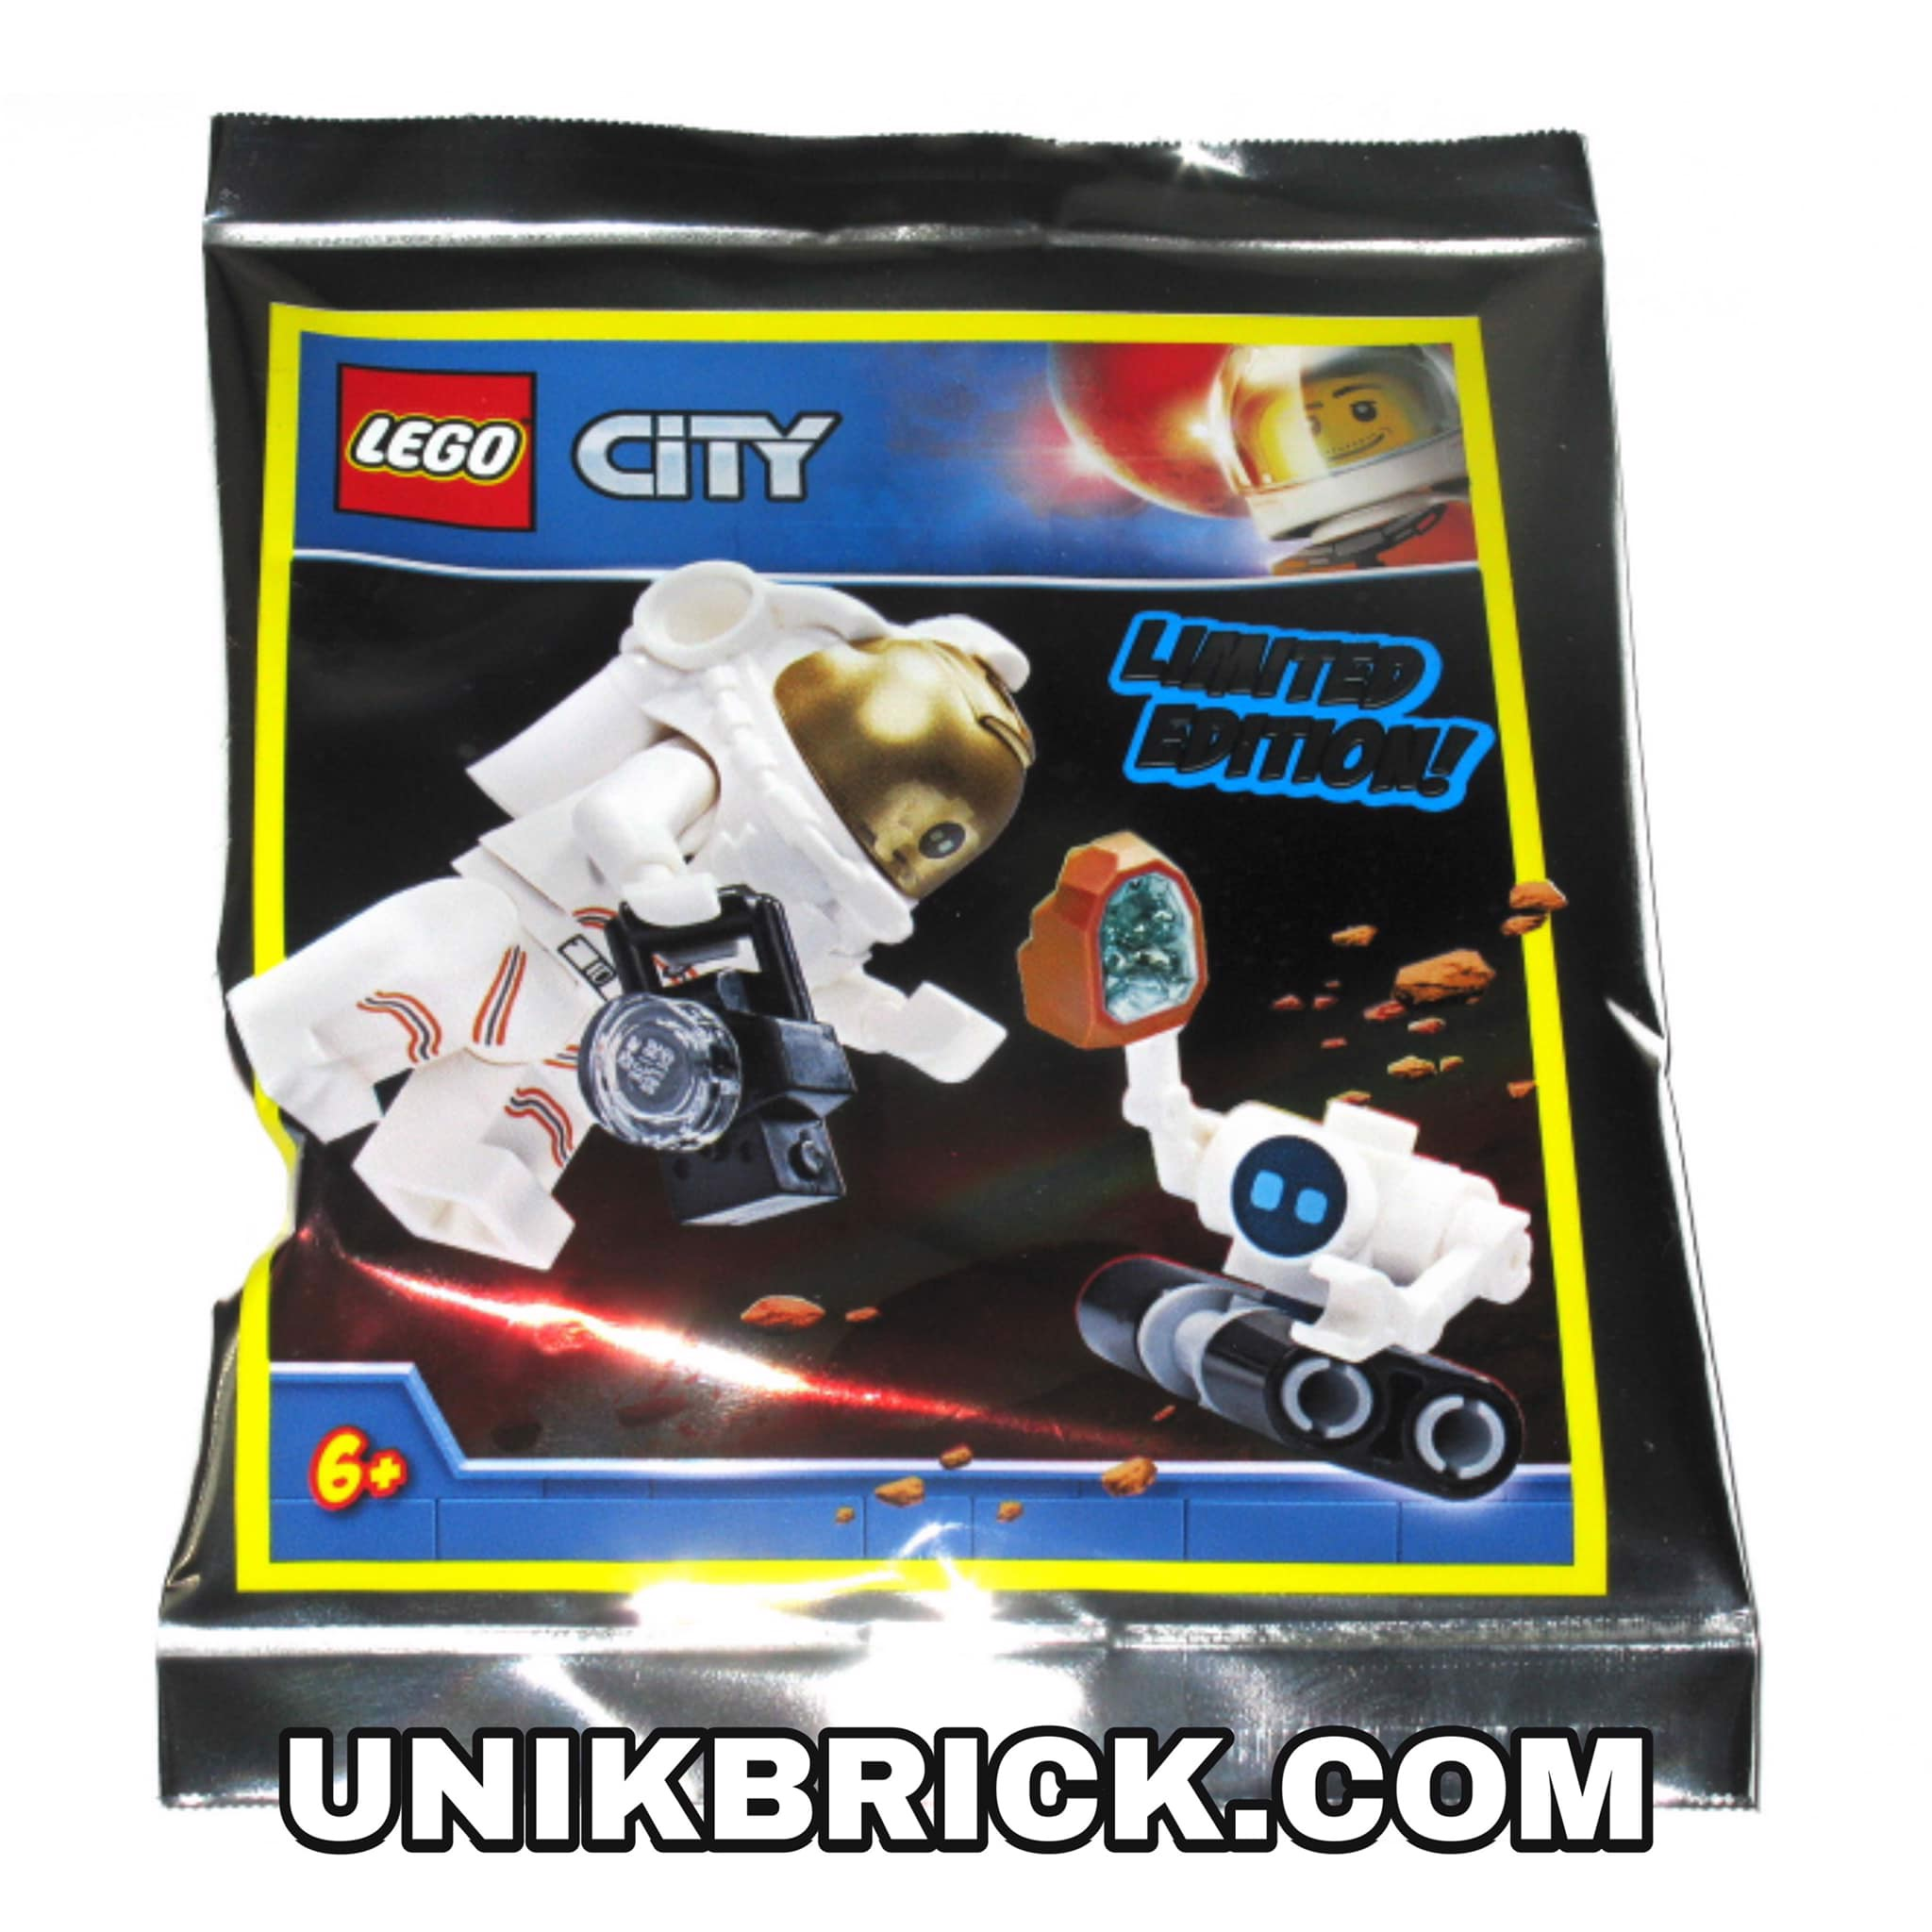 LEGO City 951908 Astronaut Foil Pack Polybag